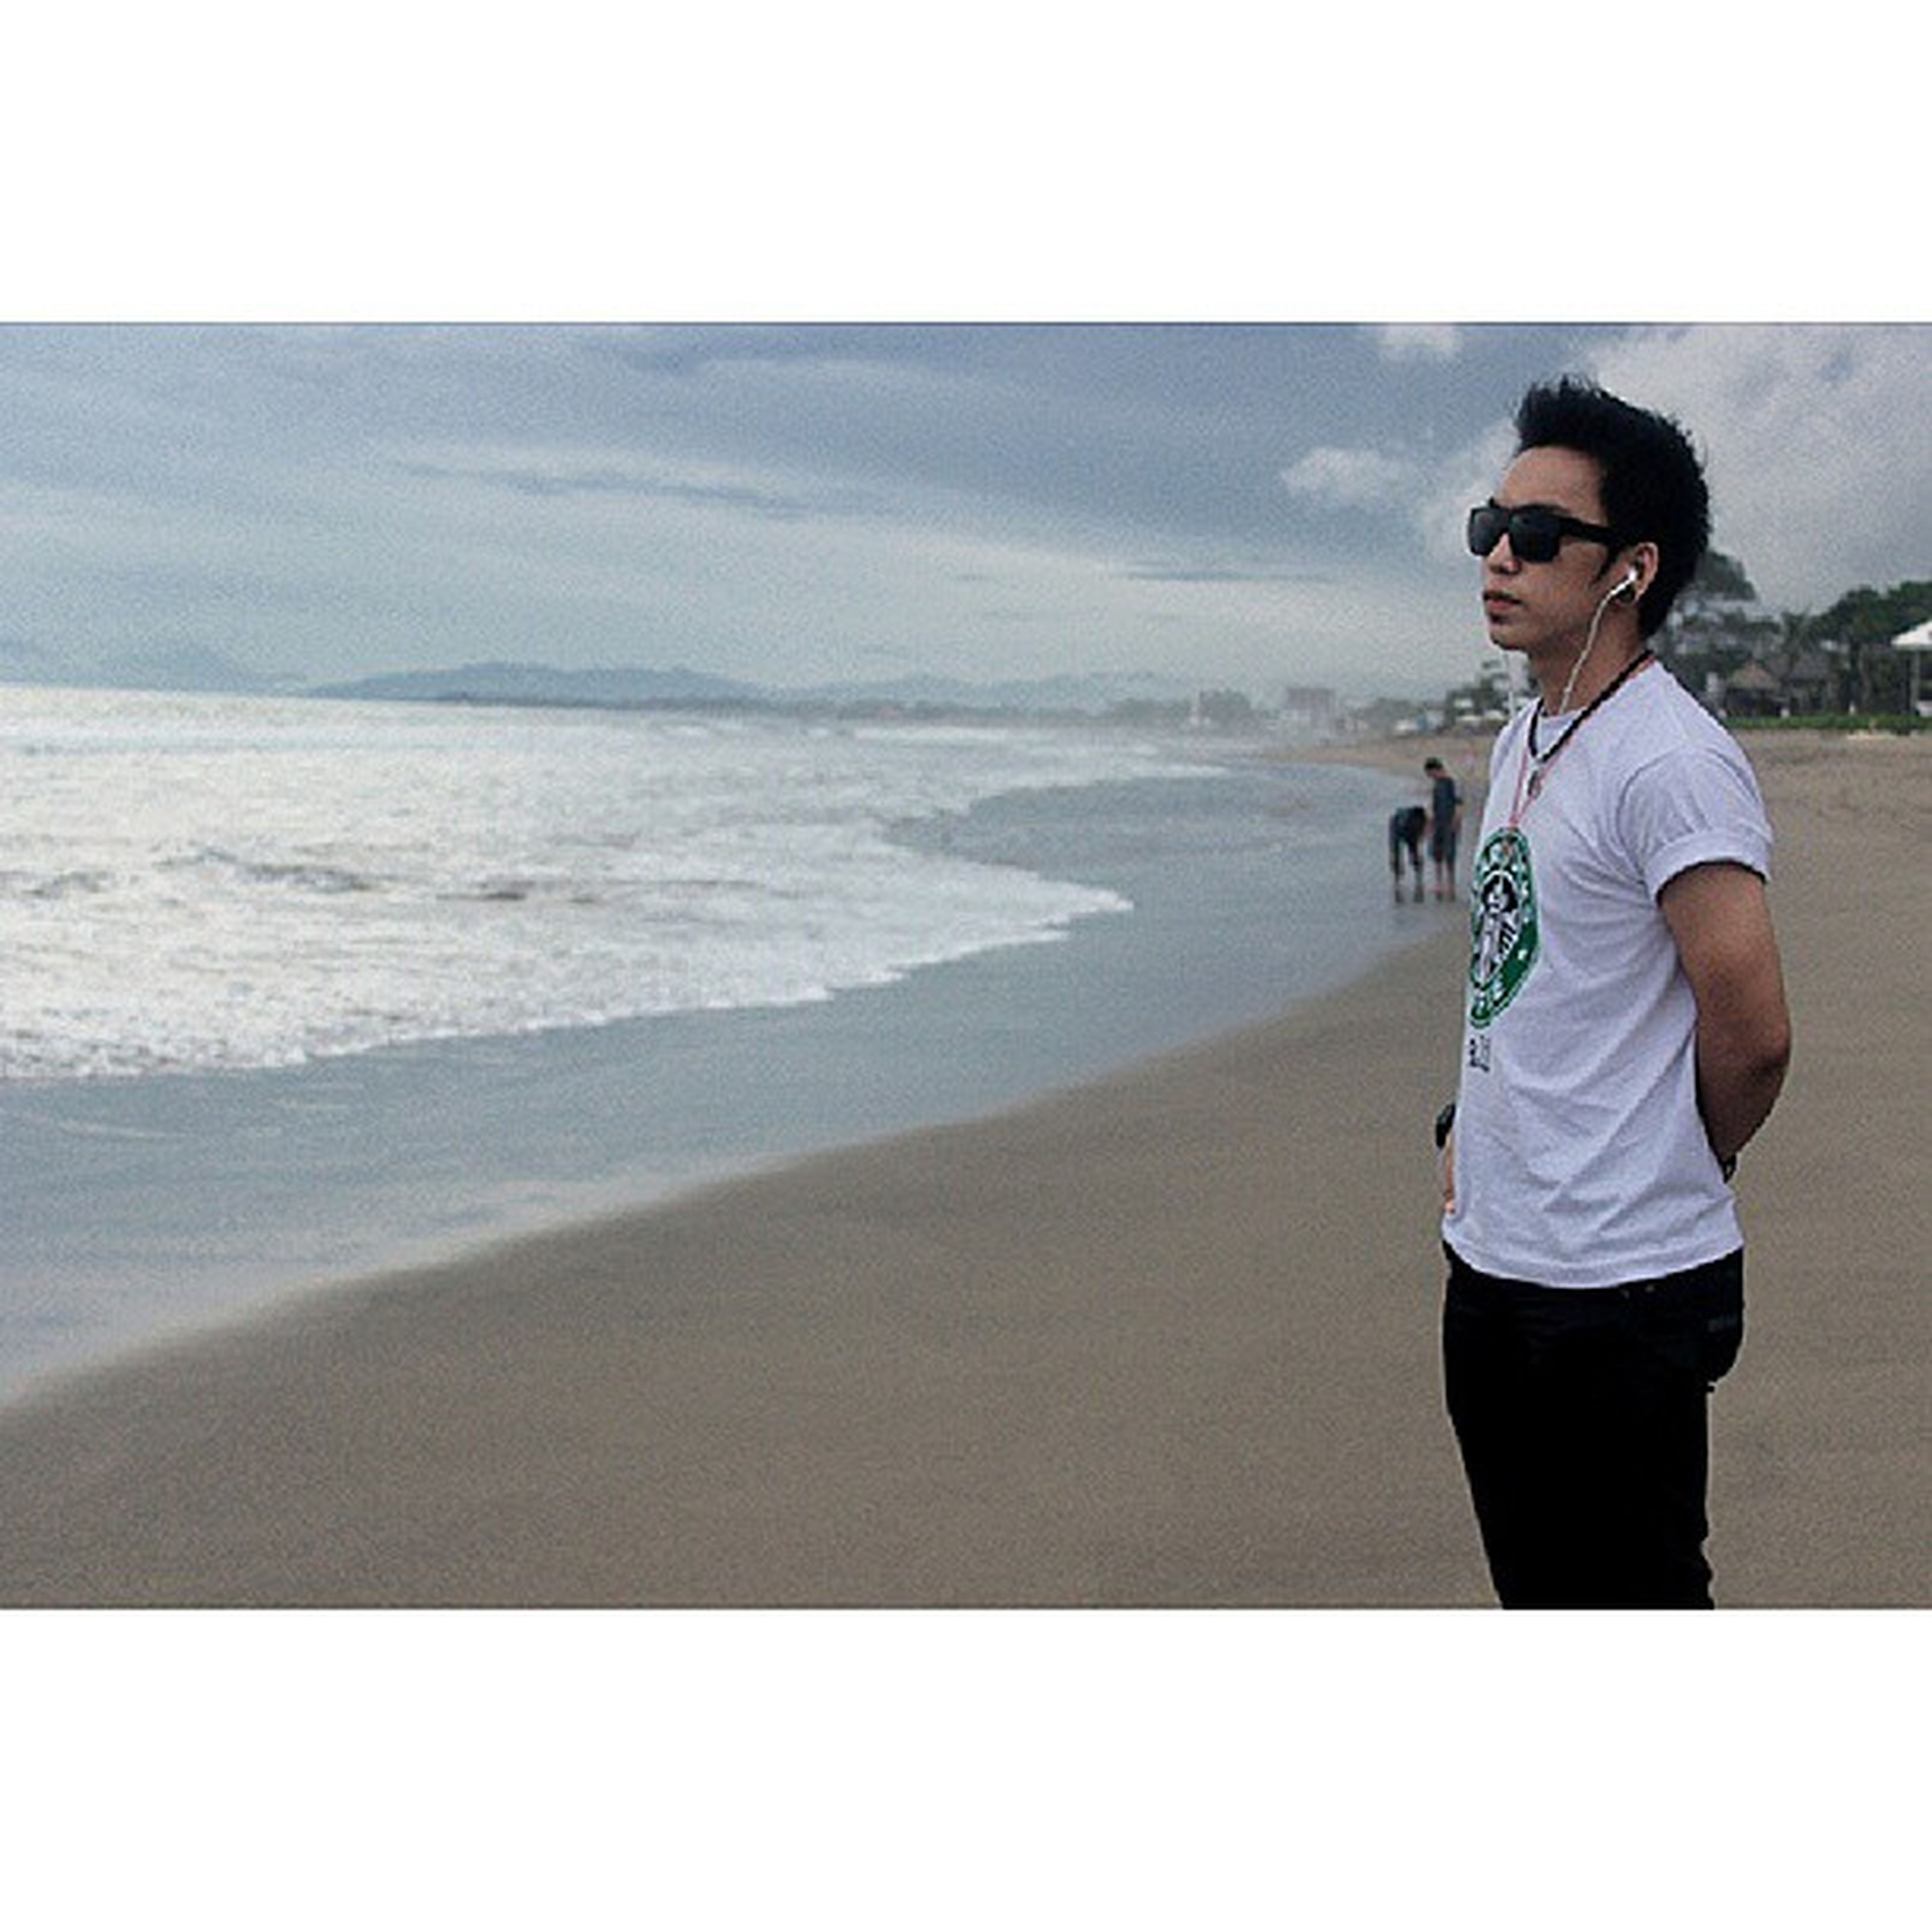 beach, lifestyles, leisure activity, sea, transfer print, full length, casual clothing, standing, water, shore, sand, auto post production filter, person, young adult, vacations, sky, horizon over water, young men